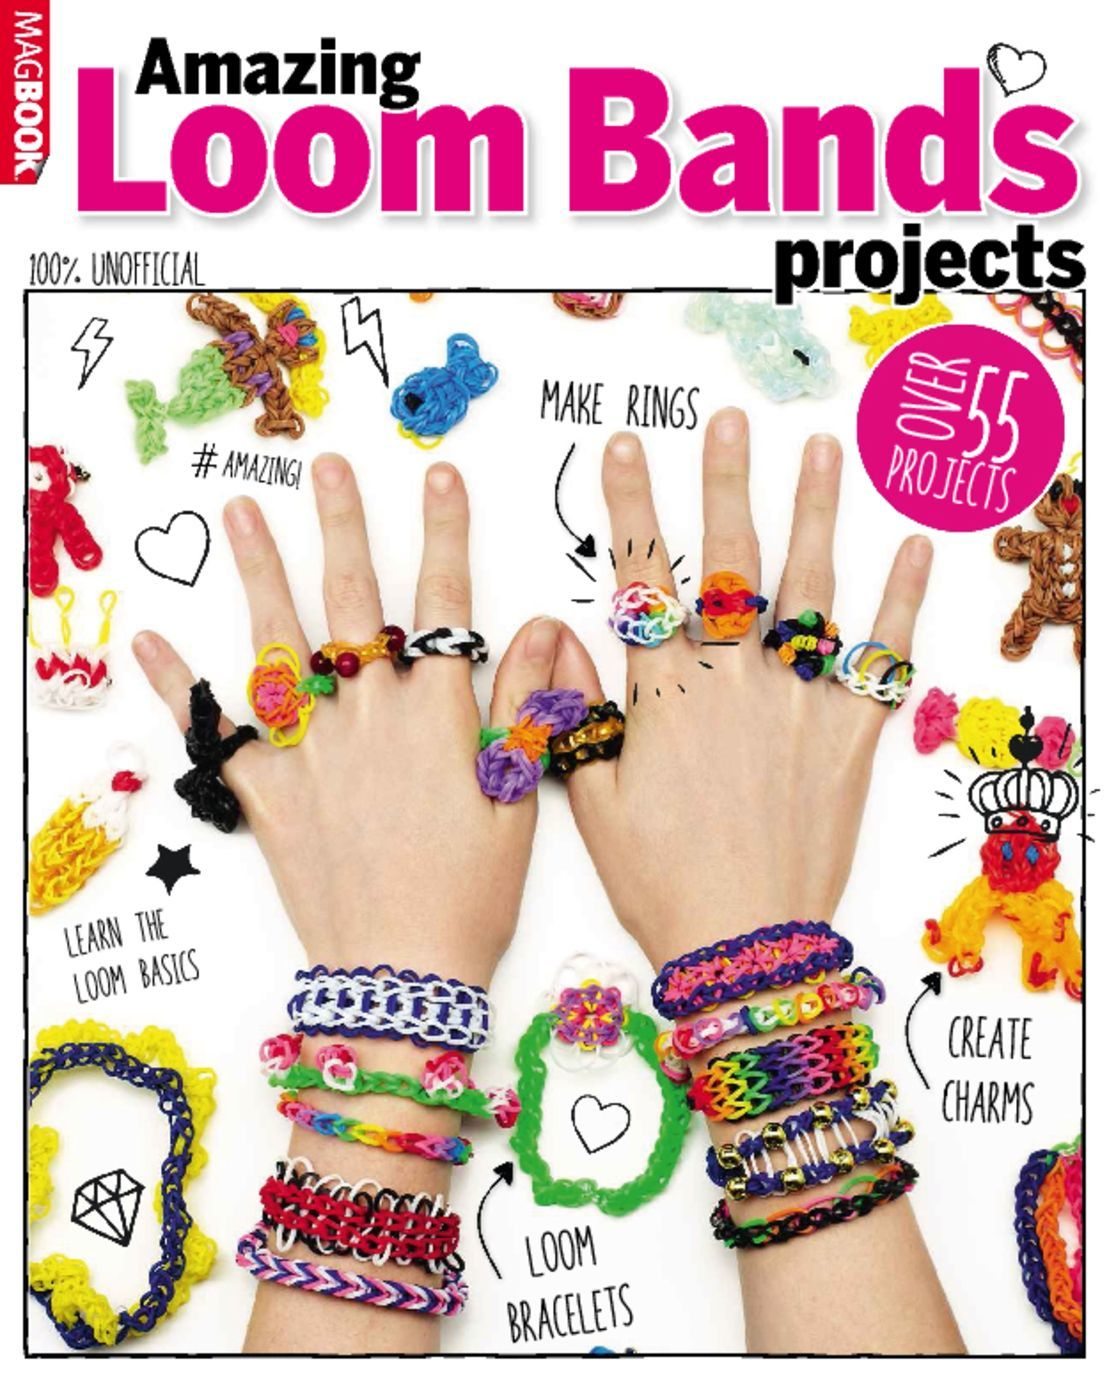 Amazing Loom Band Projects Digital